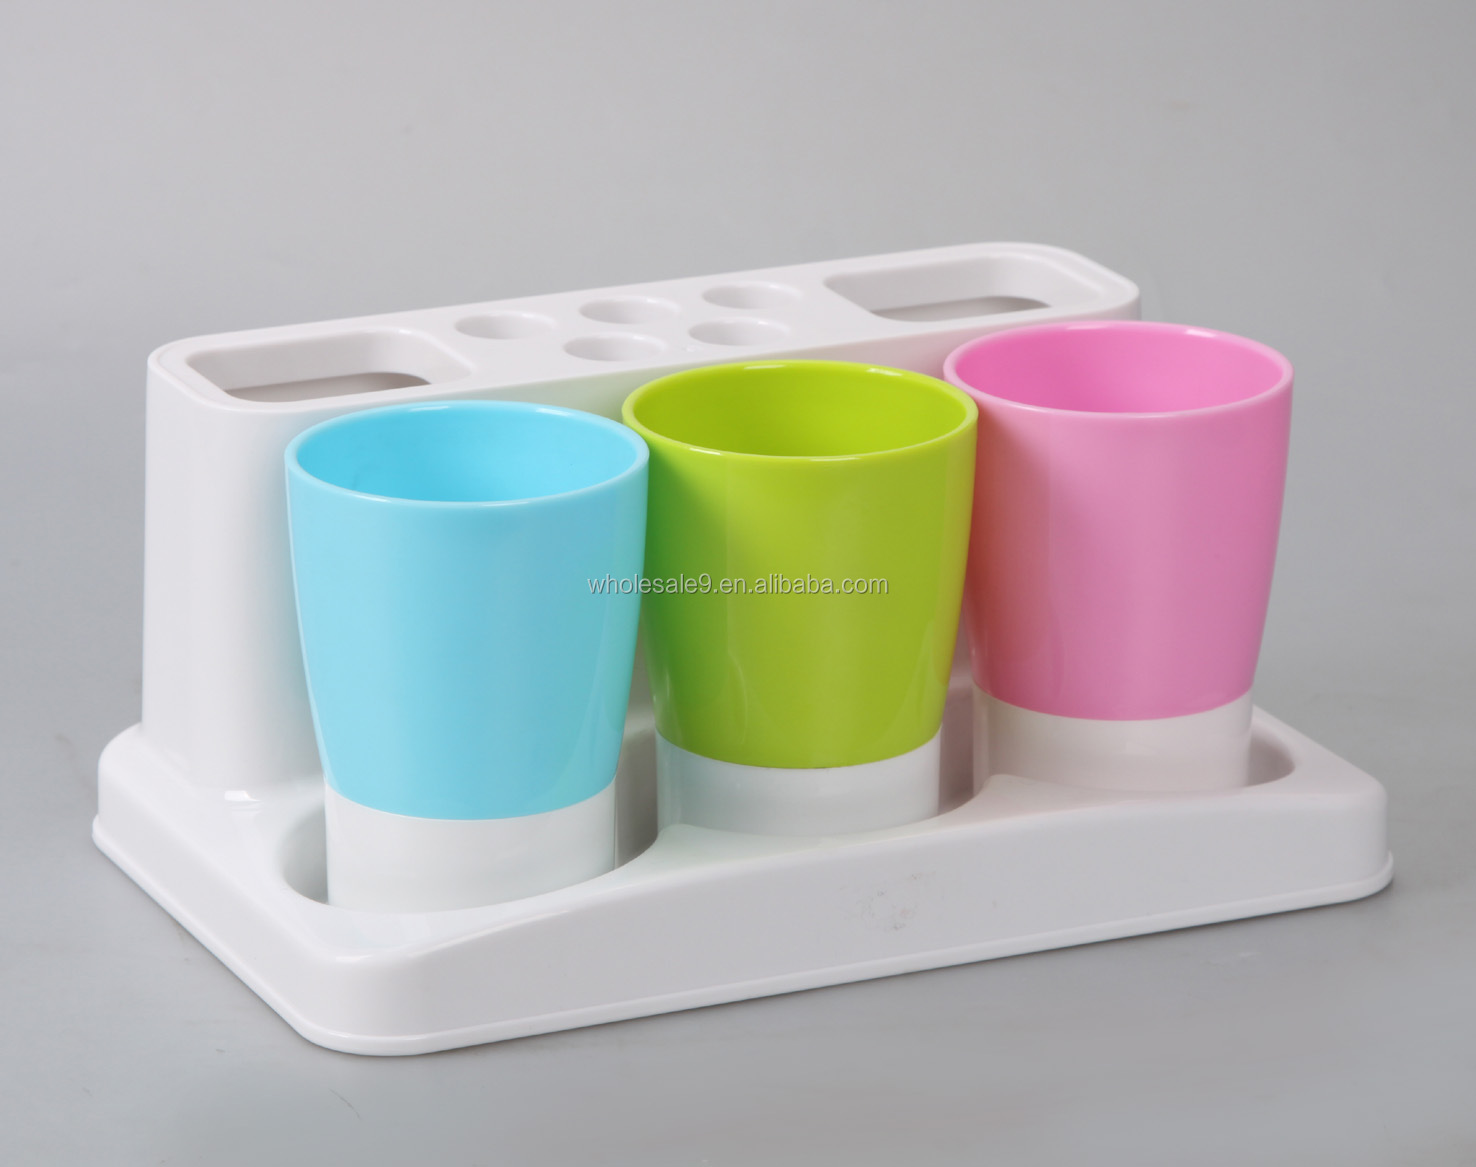 Plastic bathroom sets - Plastic Bathroom Accessories Set Toothbrush Holder Toothpaste Holder Tumbler